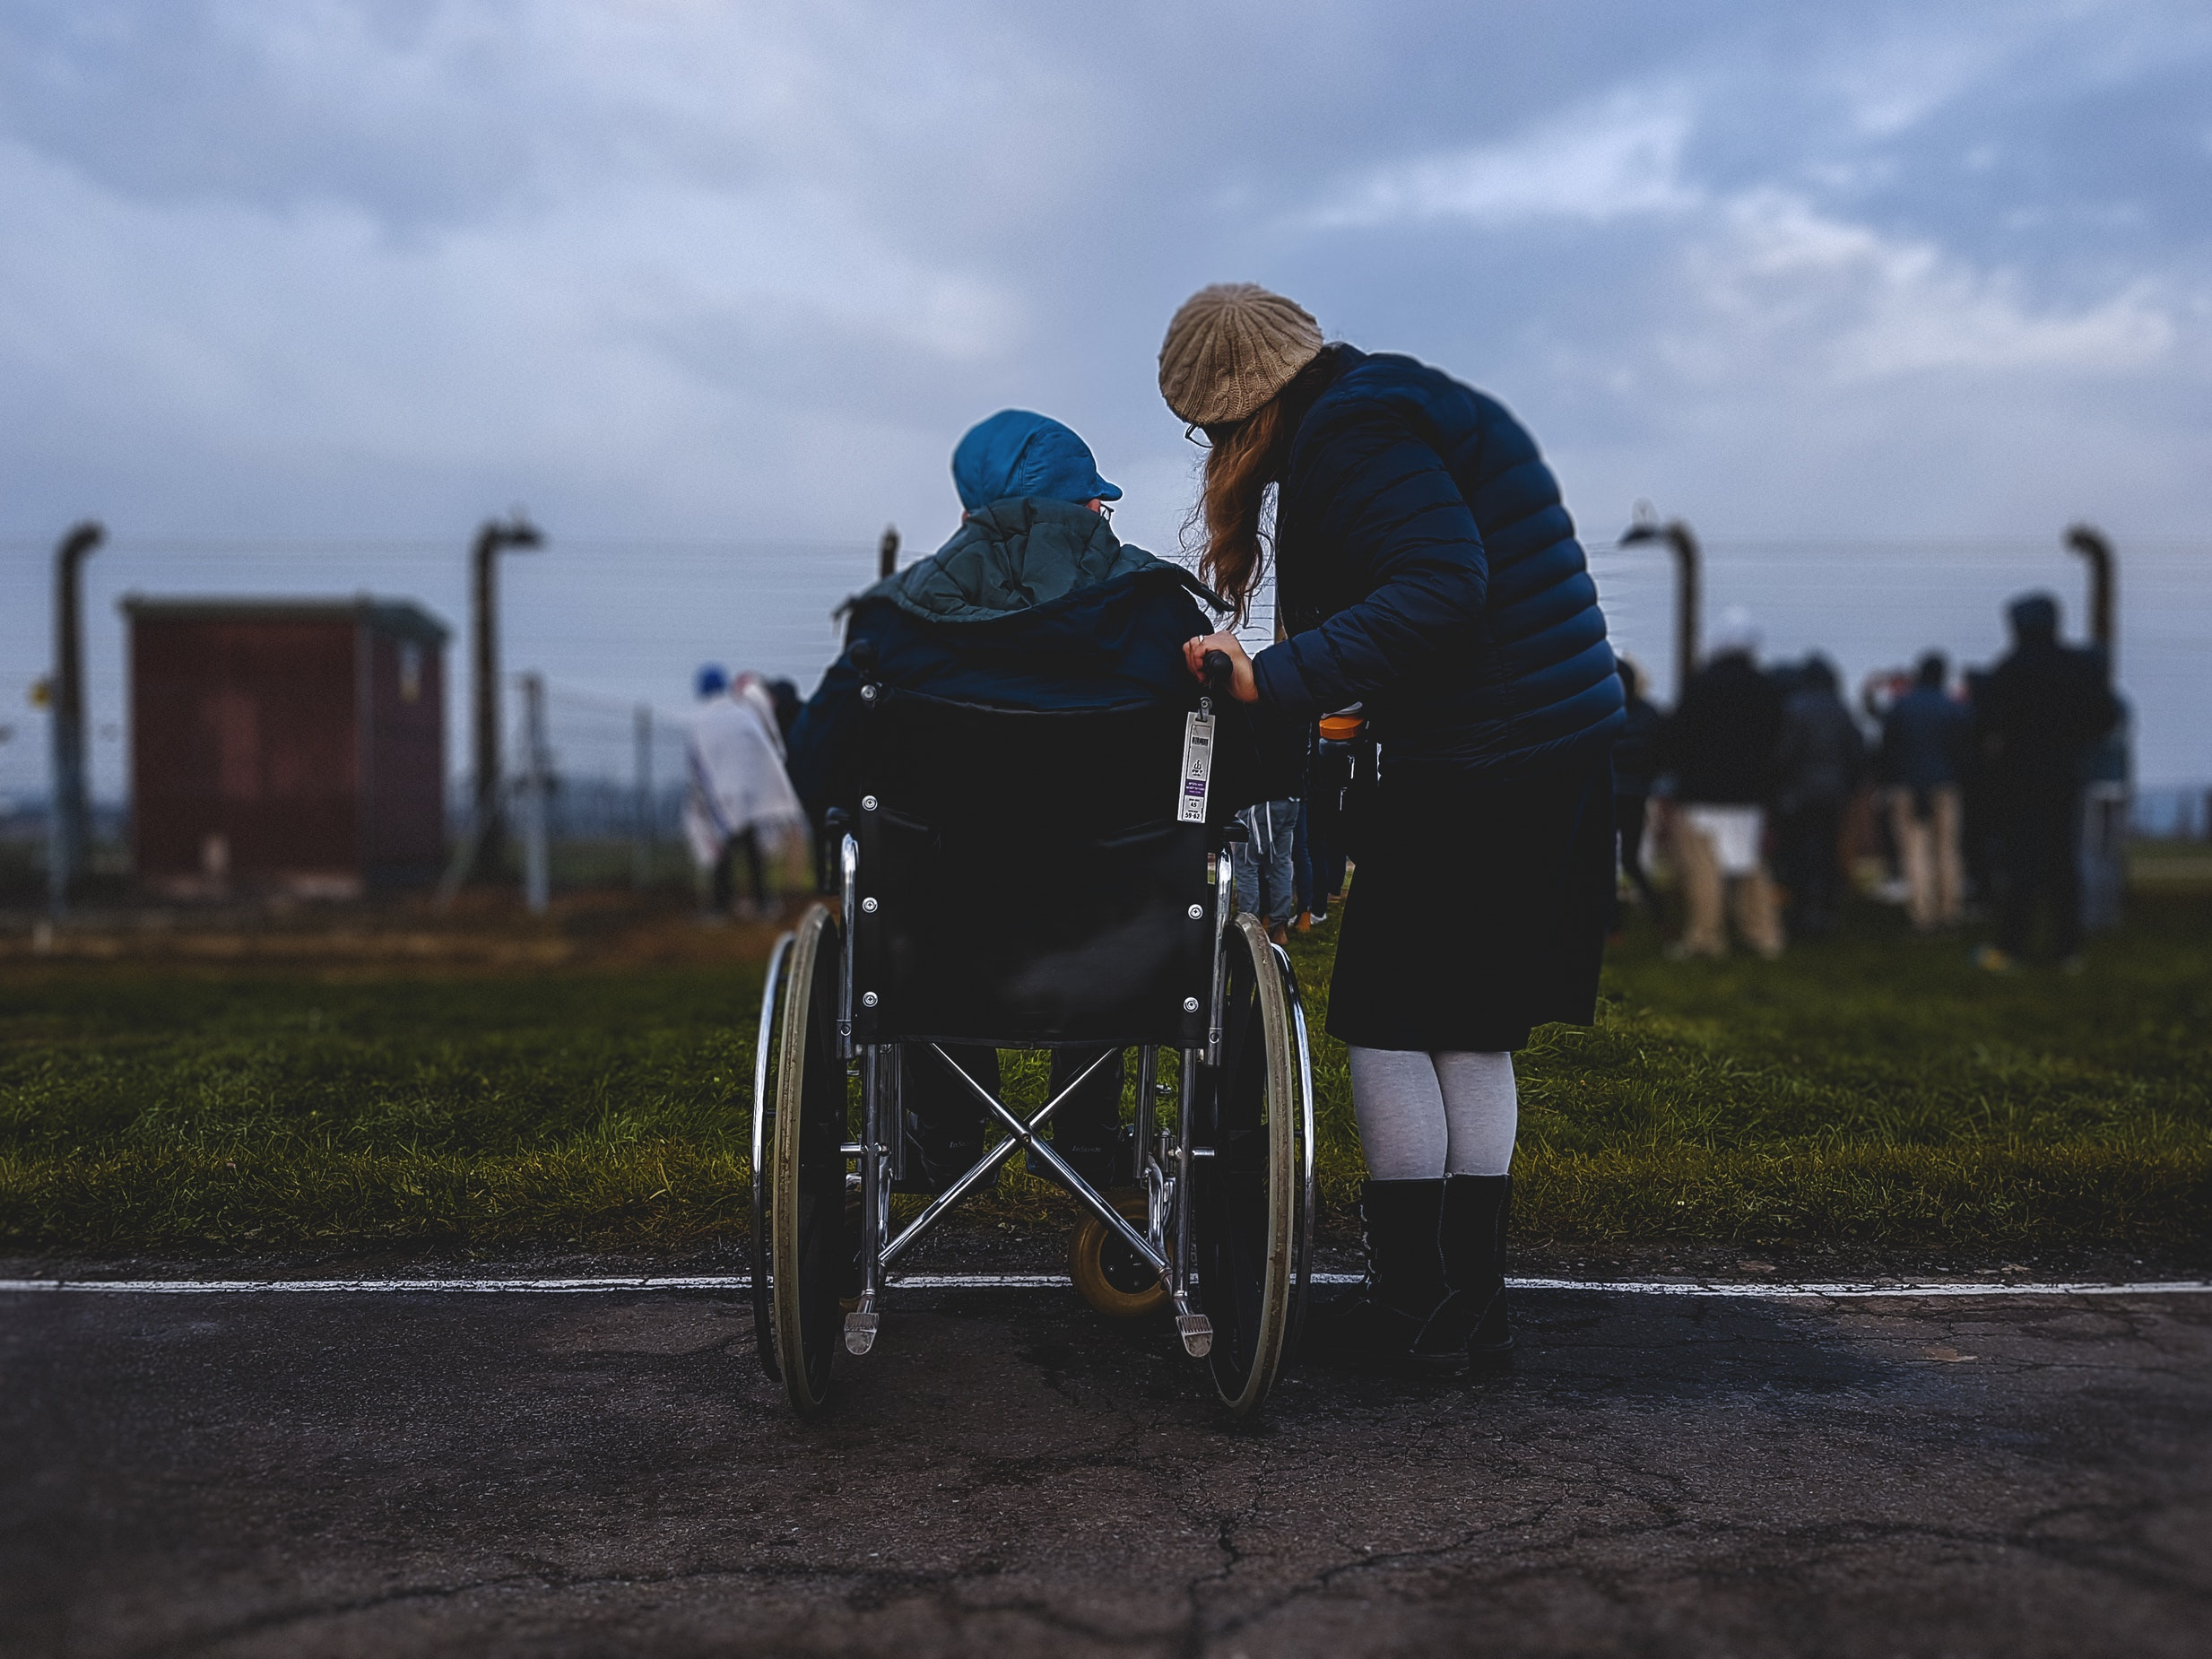 Child caring for elderly parent outdoors